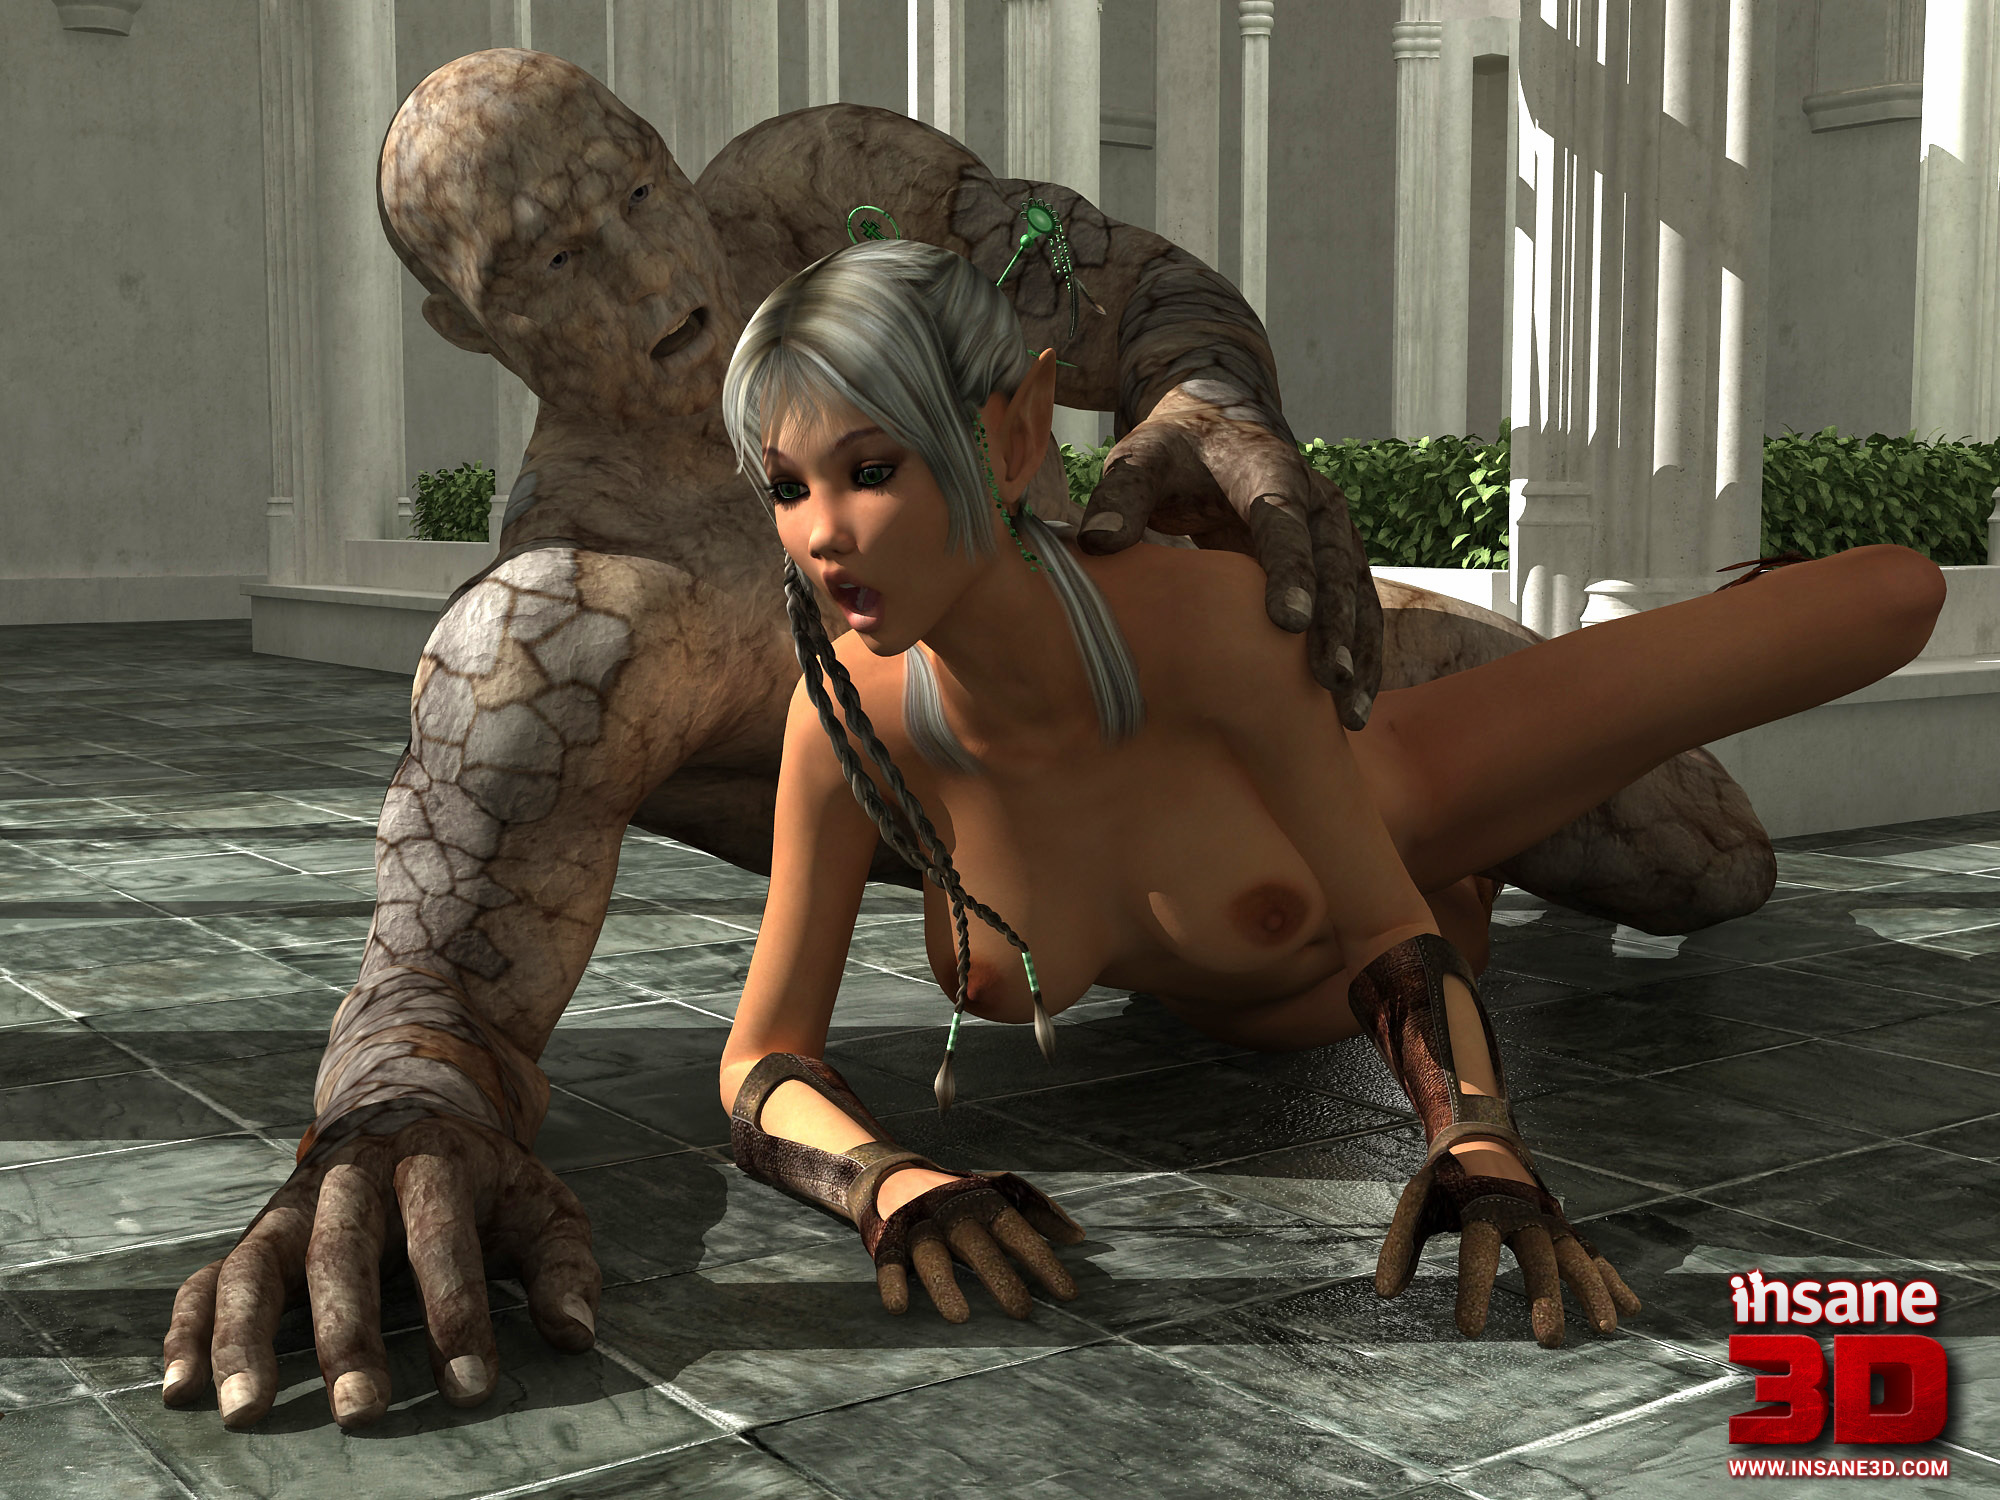 Monster sex story 3d free nackt girls